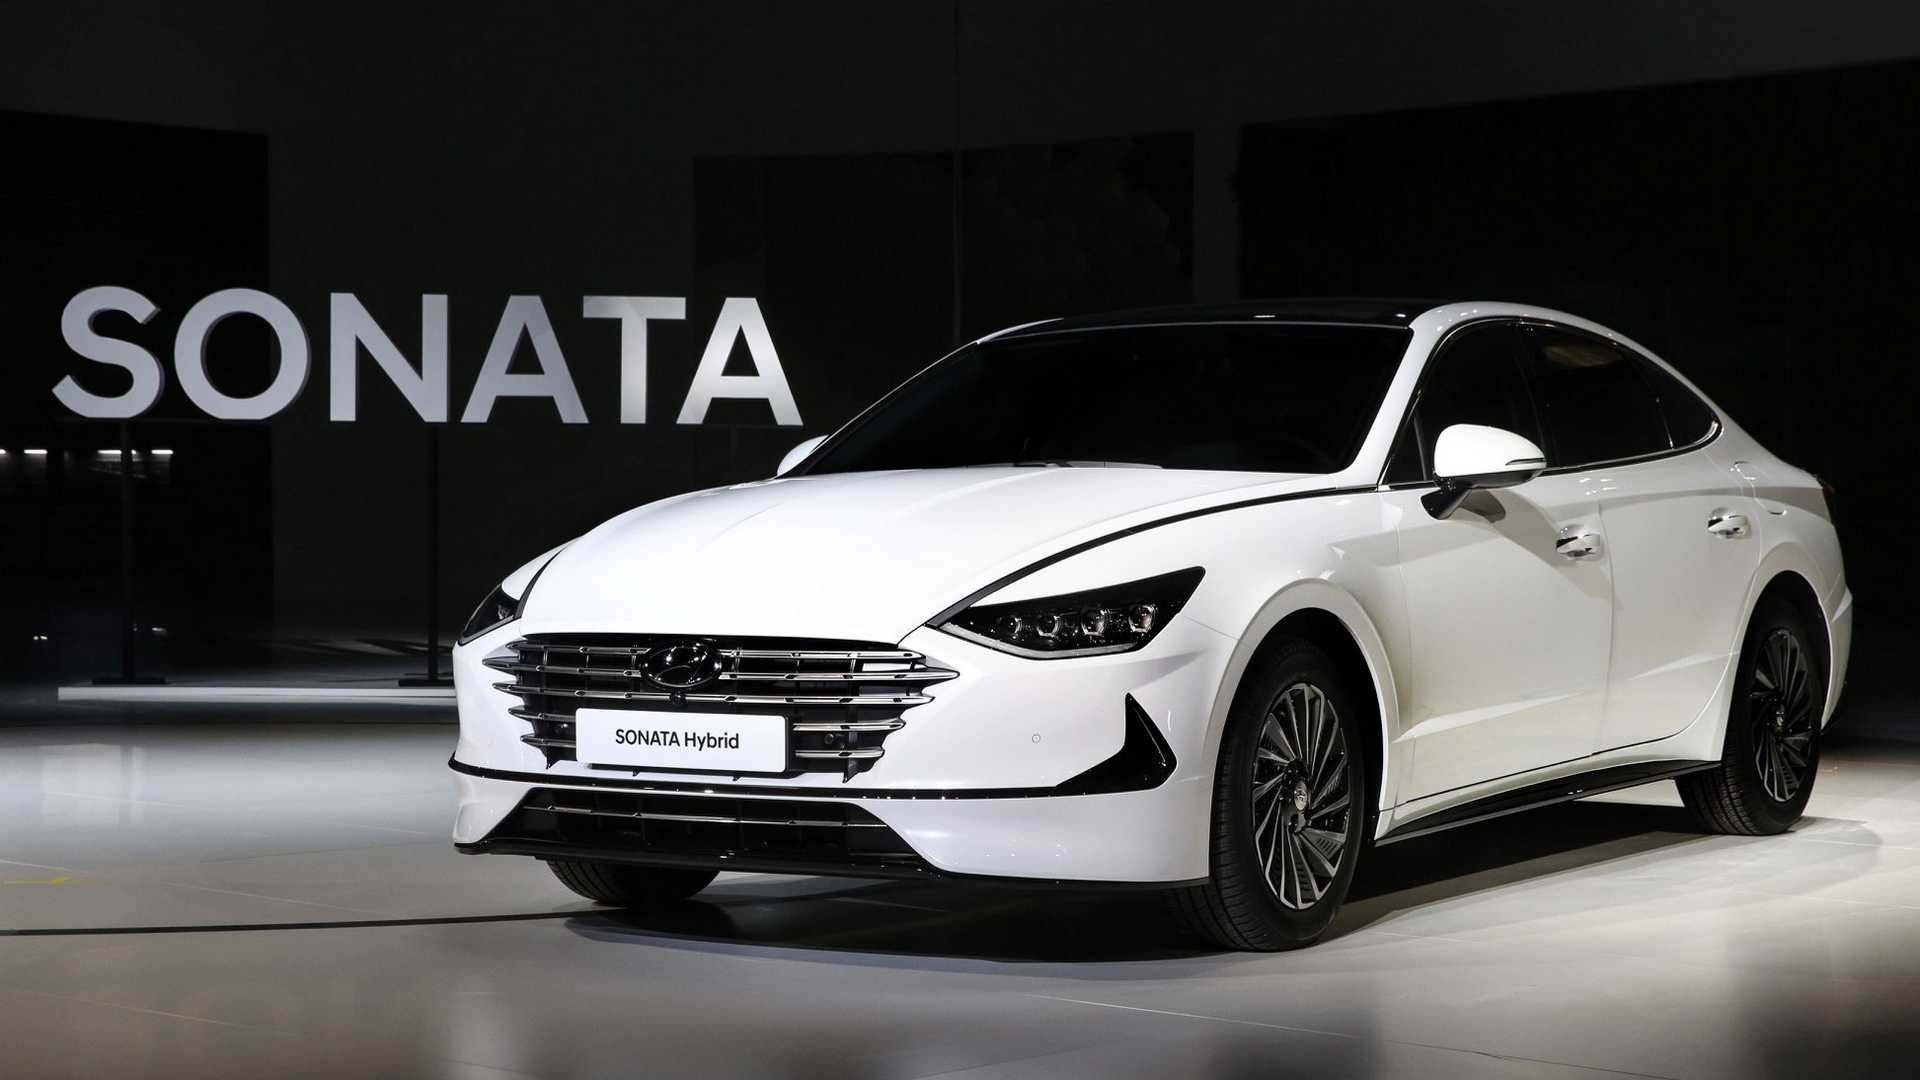 2020 Hyundai Sonata Turbo Debuts In Korea With 180 HP